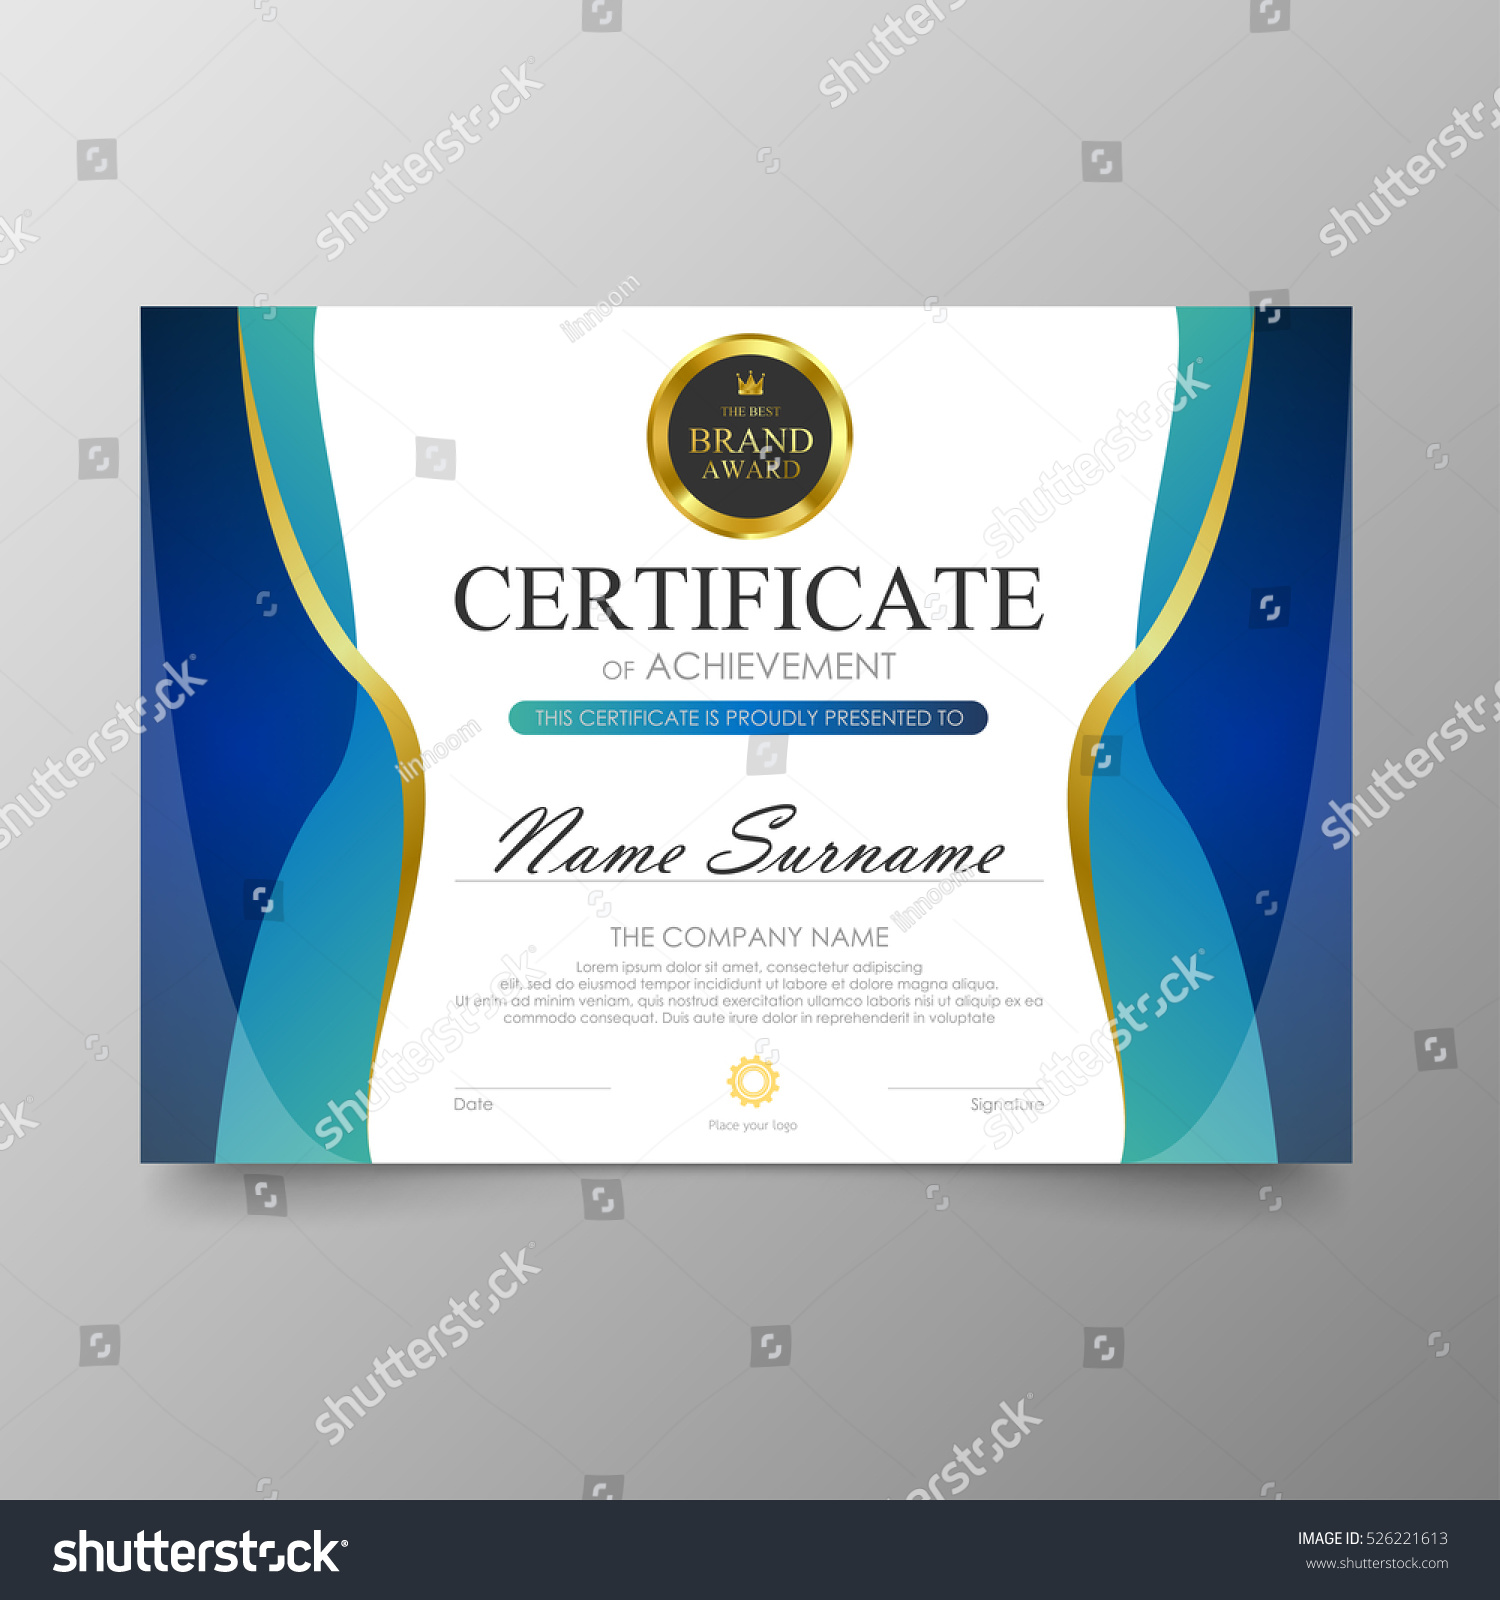 certificate template awards diploma background vector stock vector  certificate template awards diploma background vector stock vector 526221613 shutterstock